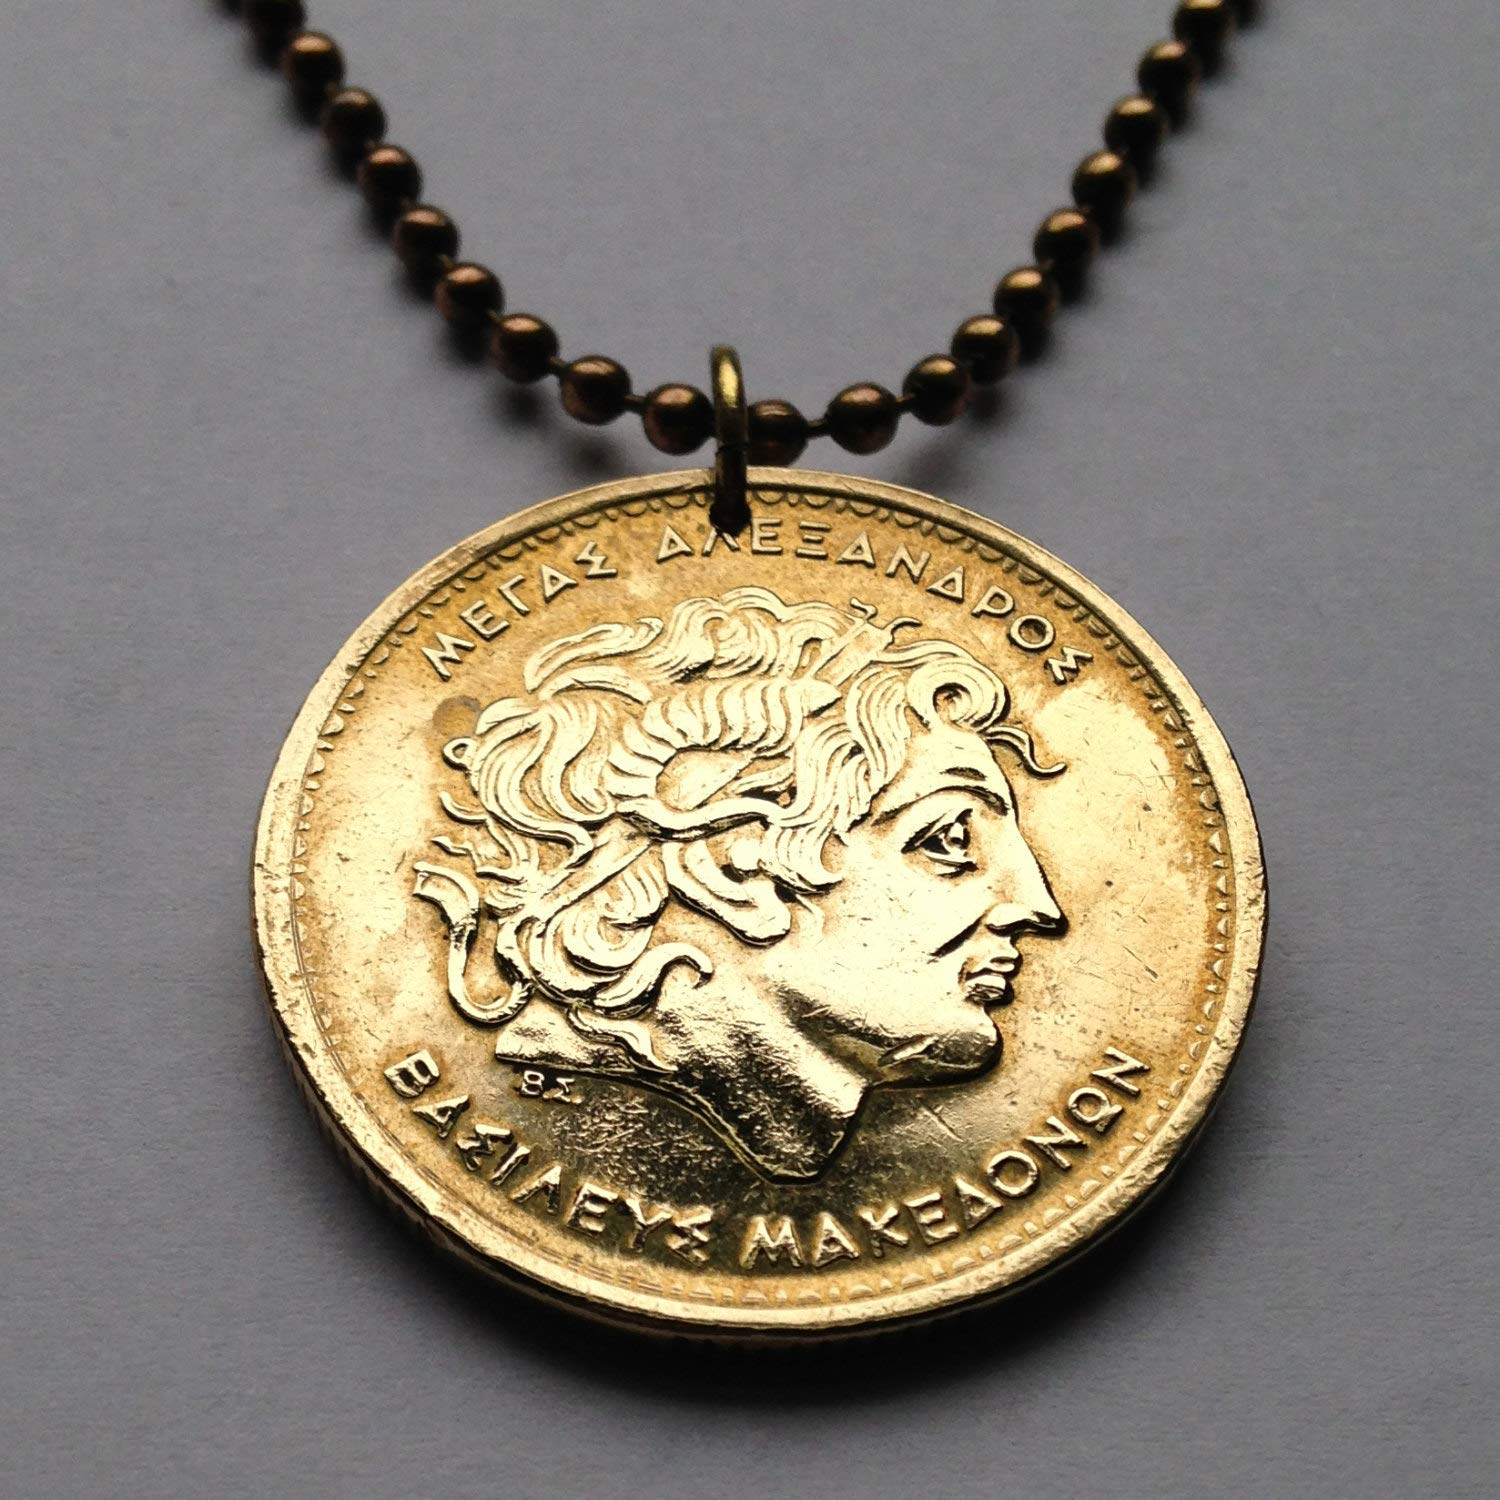 1992 Greece 100 Drachmes Alexander the Great